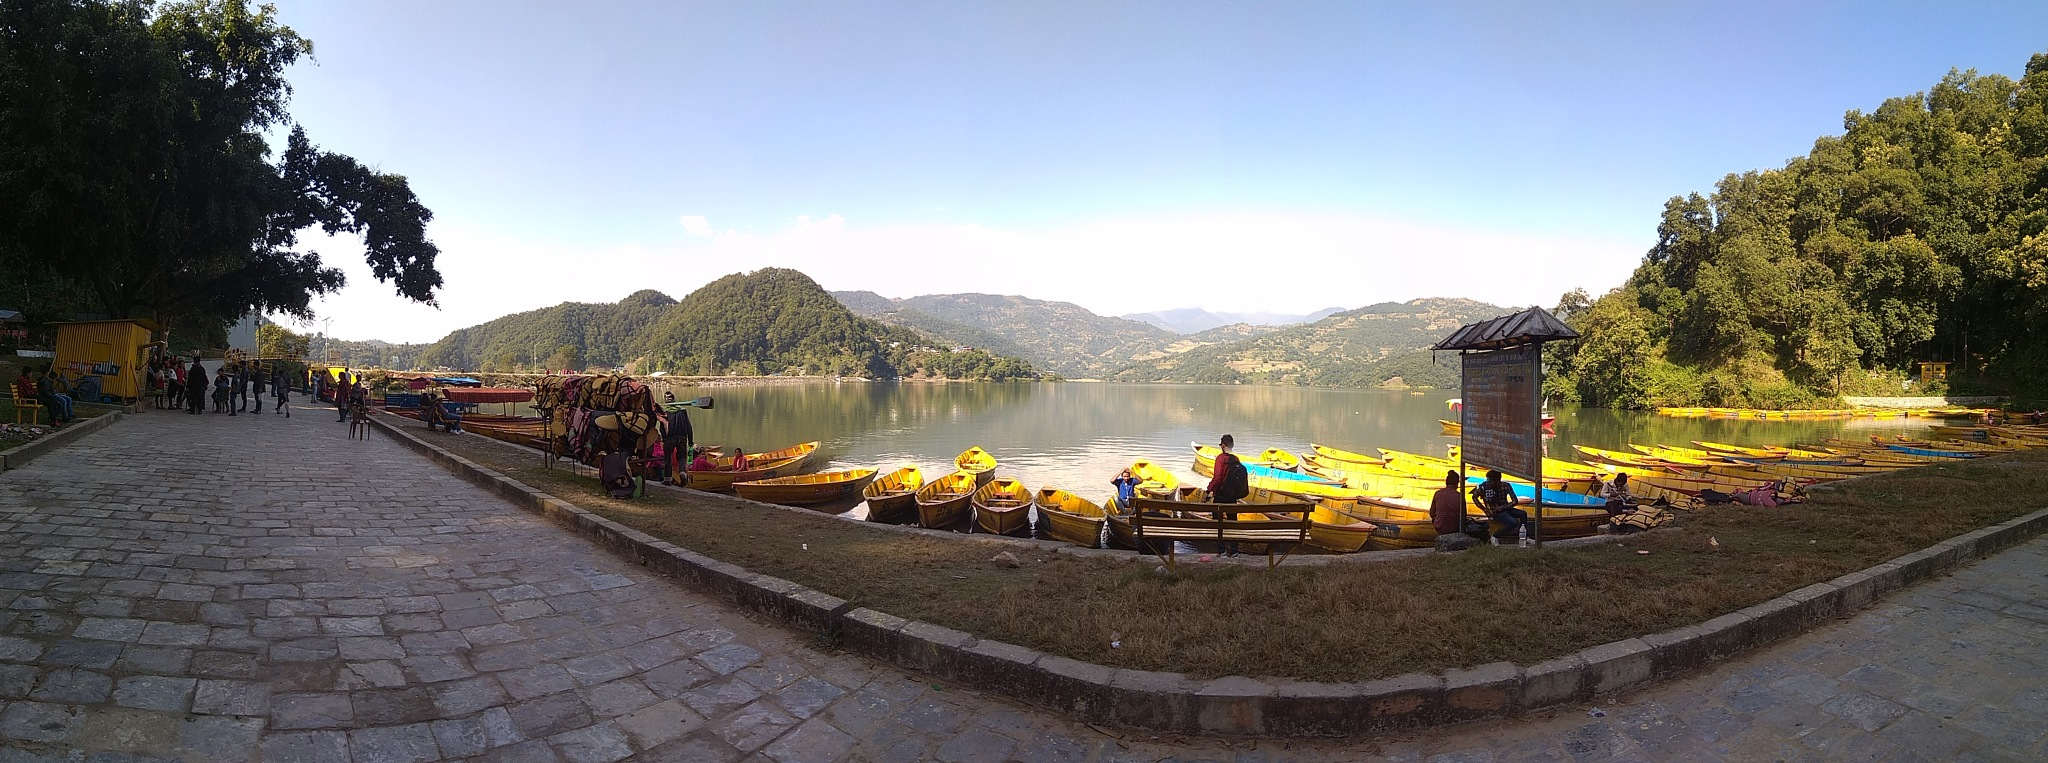 lake from pokhara by mohammad nihal akhtar